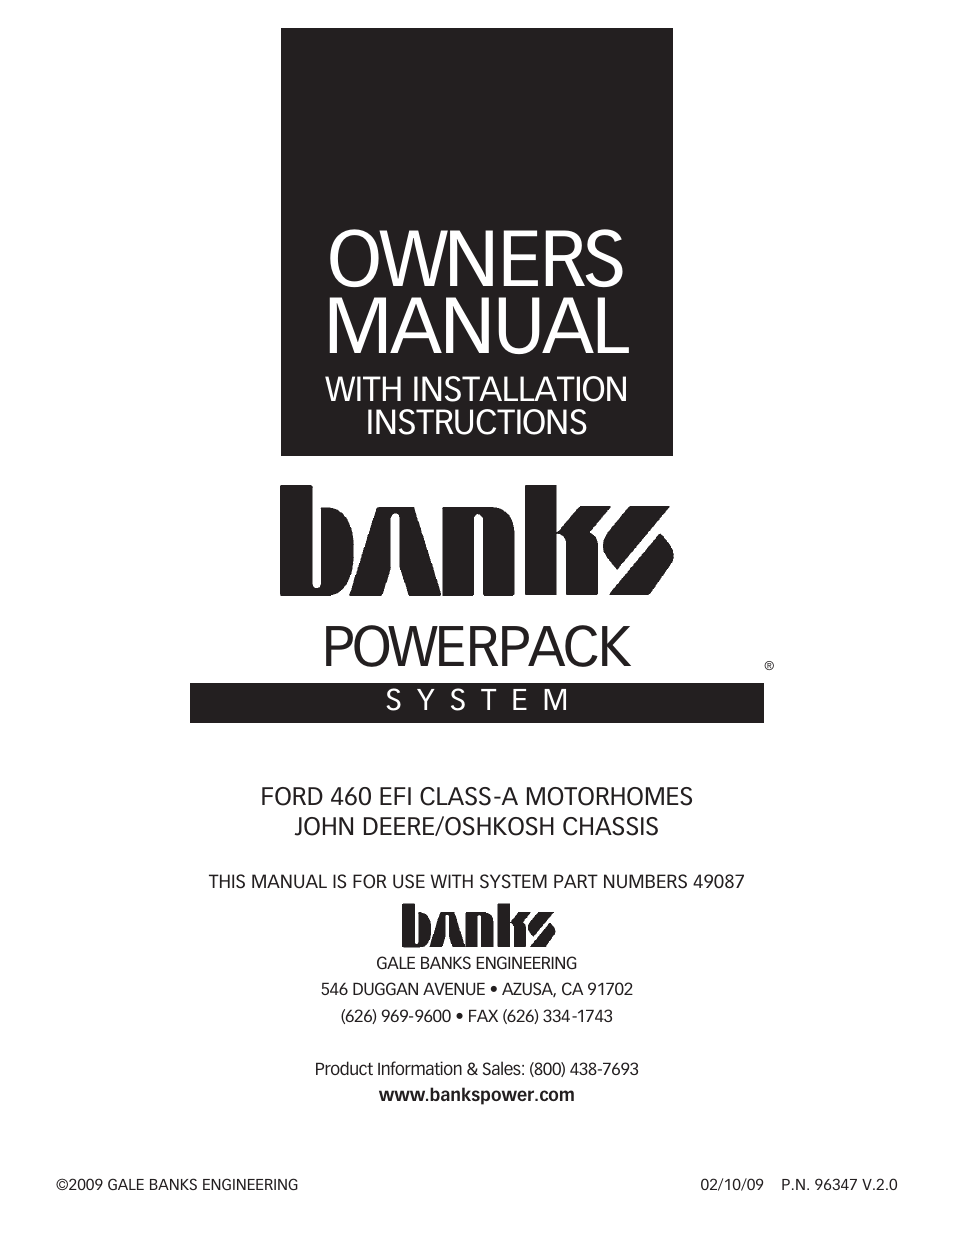 Banks Power Ford Motorhomes: (Gas '93 - 98 7 5L Class-A